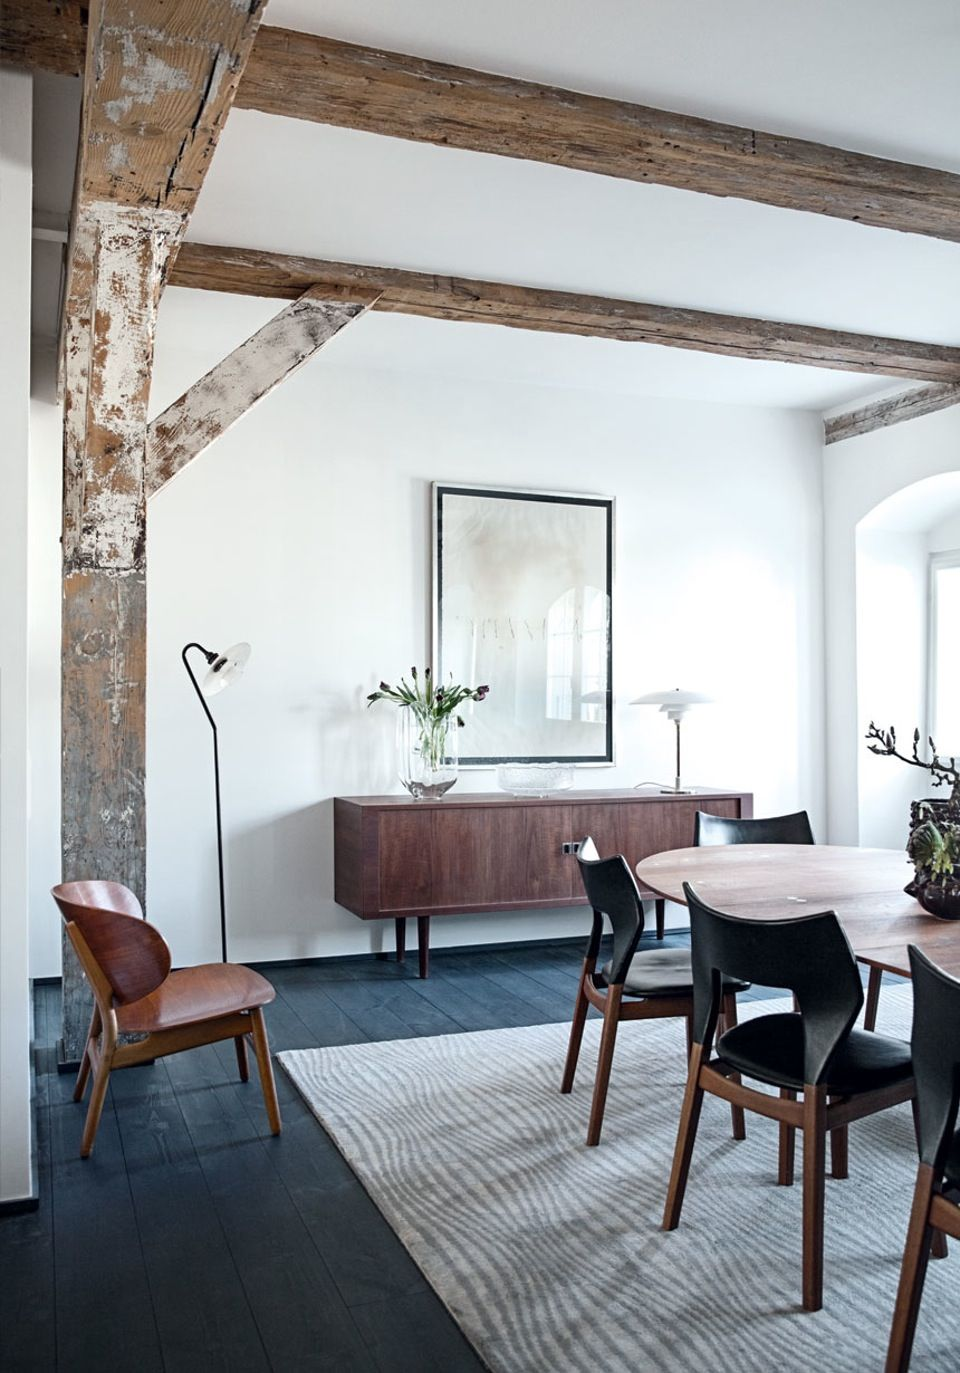 The decor & details in this extraordinary Danish home are to die for ...